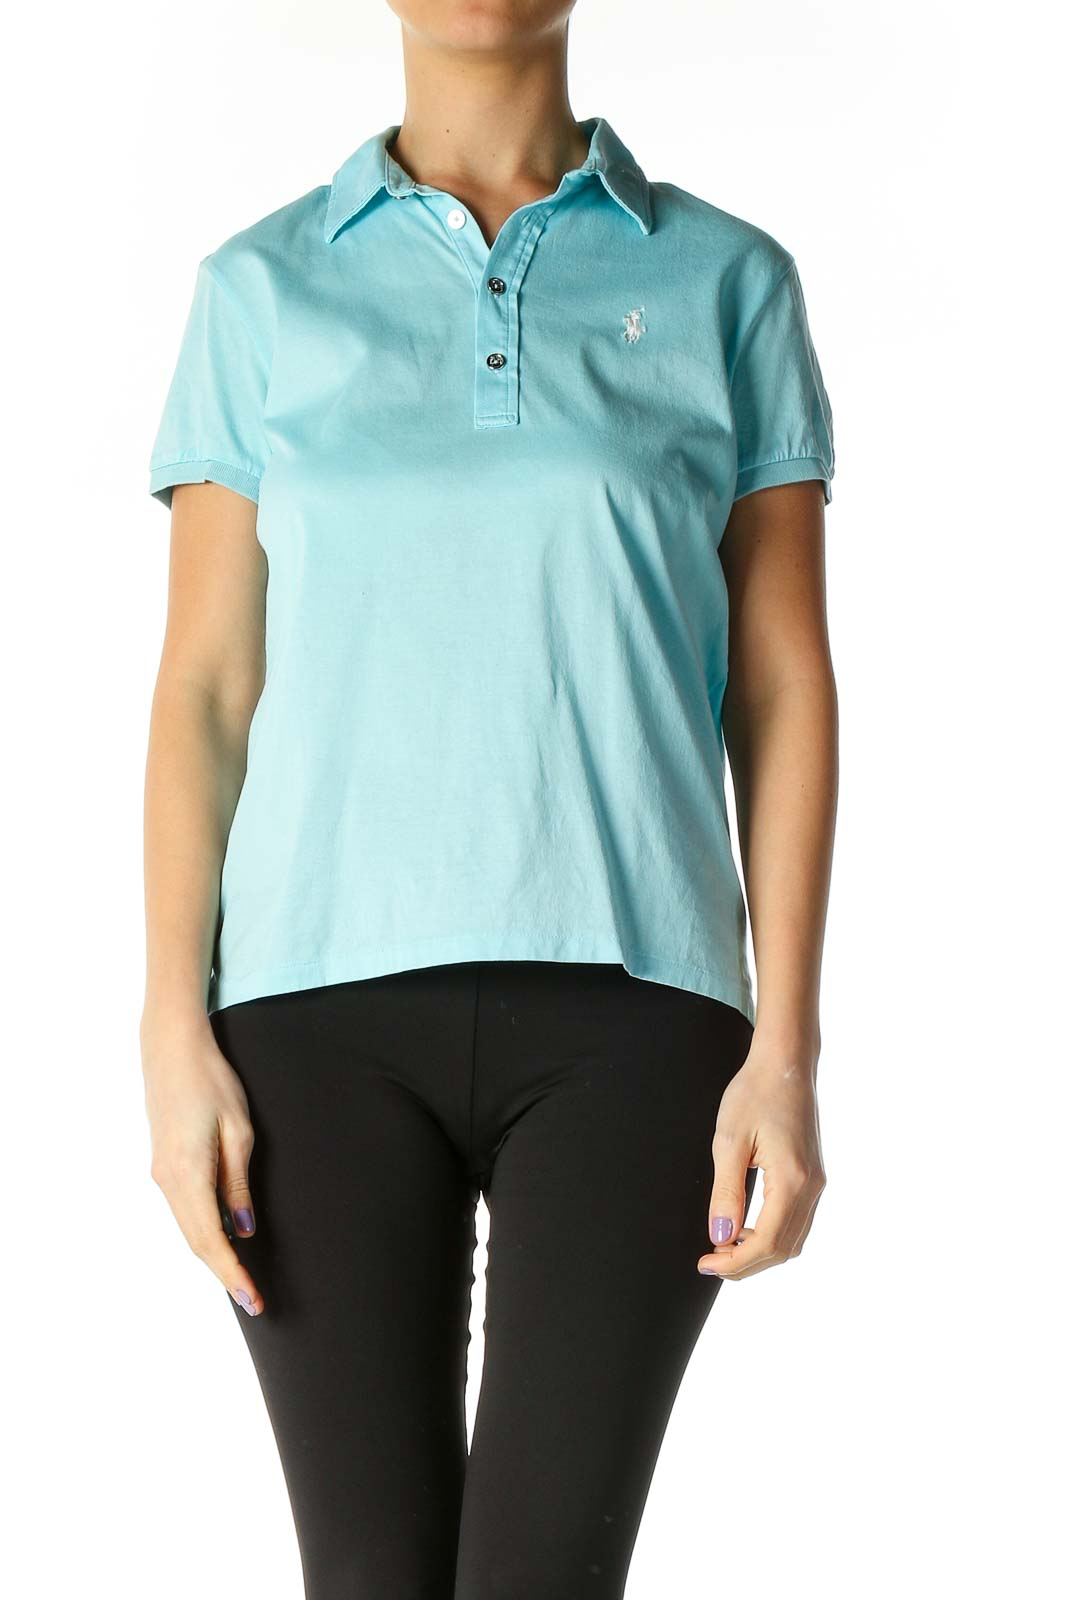 Blue Solid Casual Polo Shirt Front